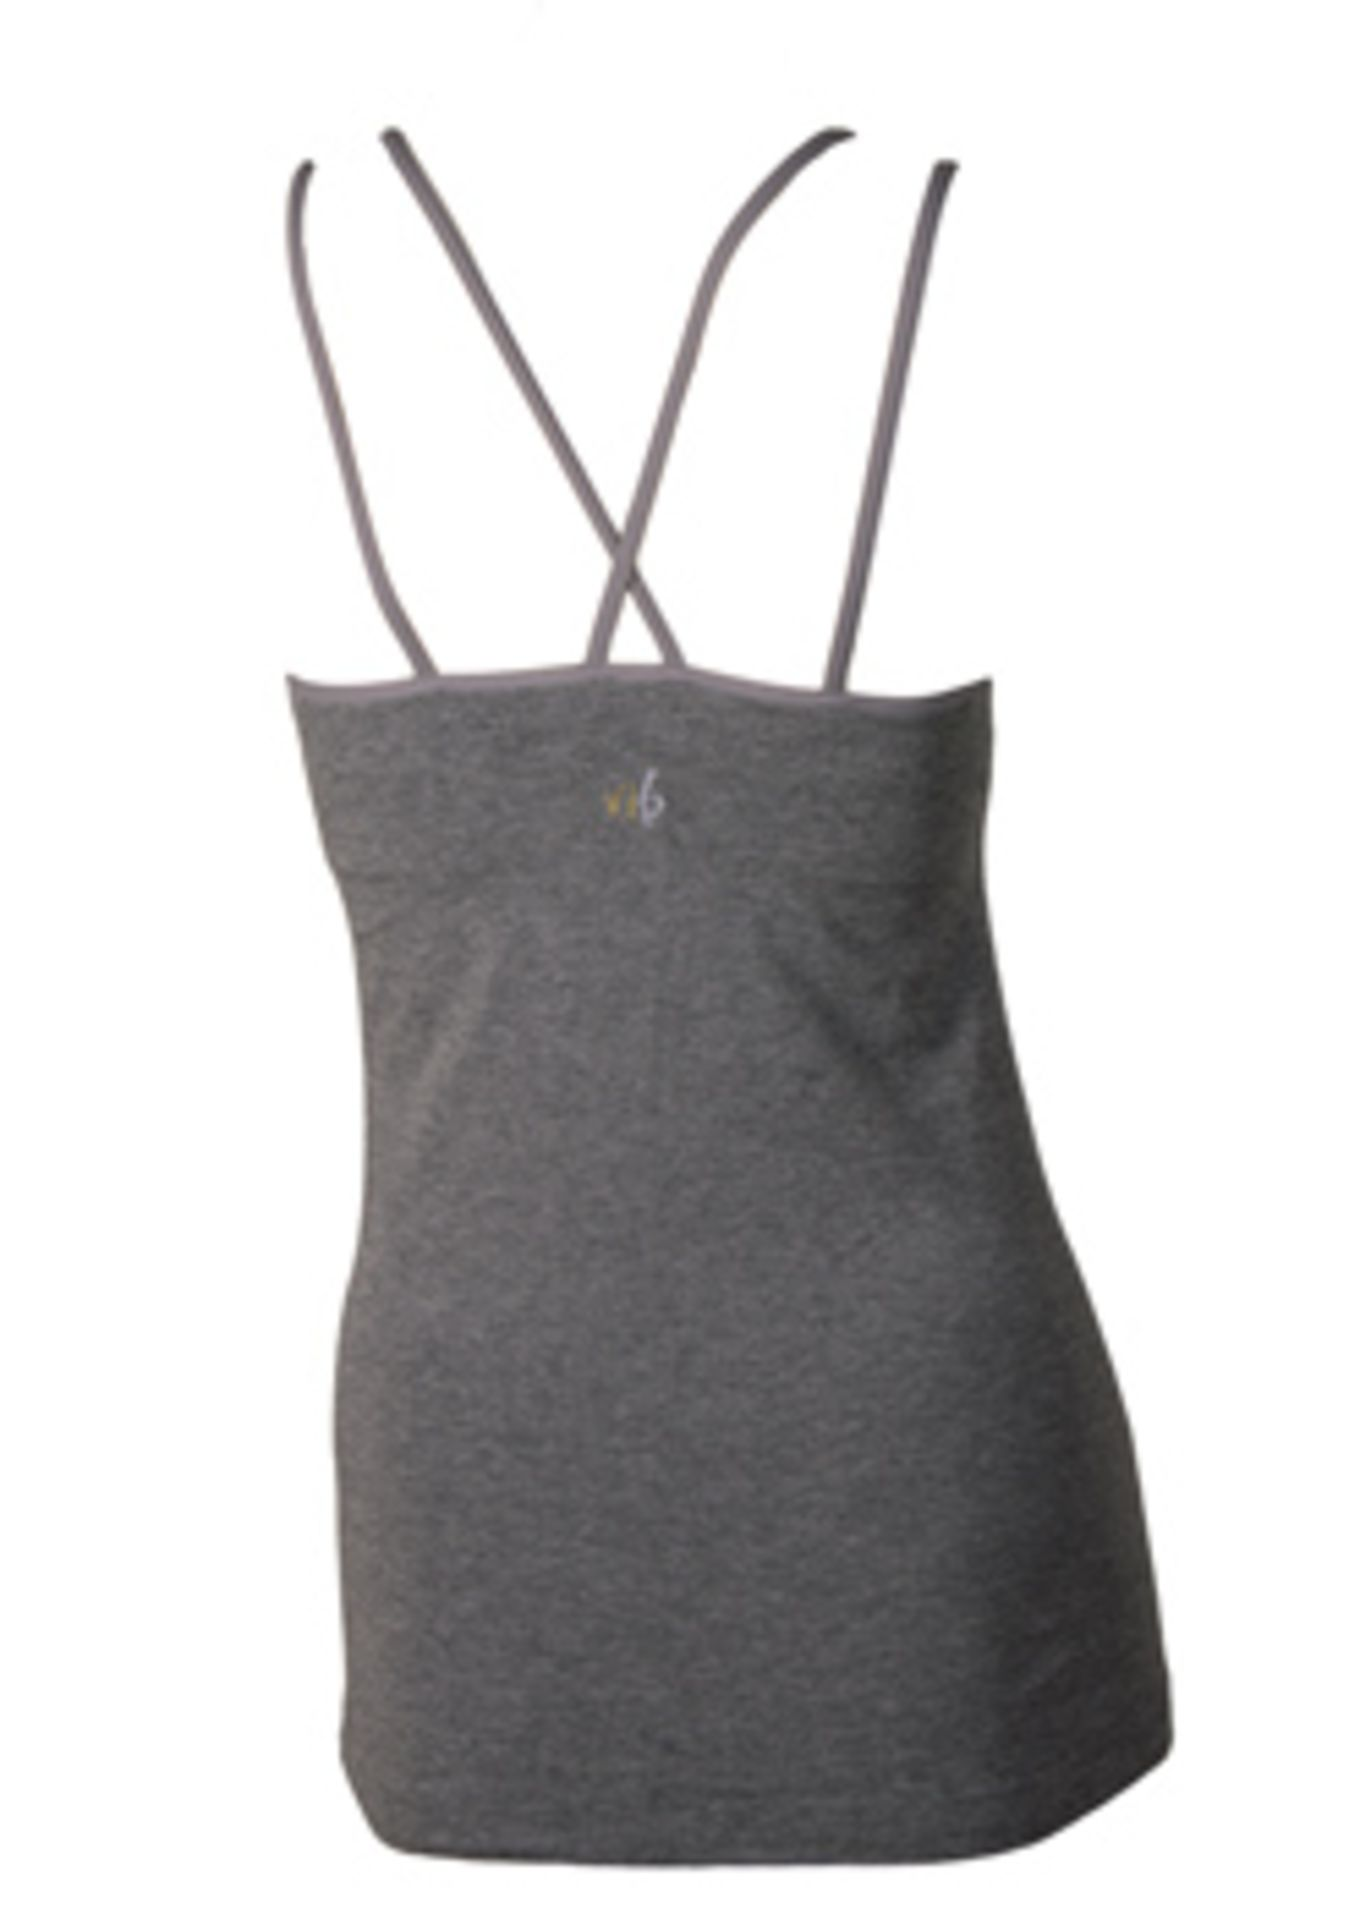 3 x Bamboo Yoga Flow Tops w/ Padded Bra | XS - Image 4 of 4